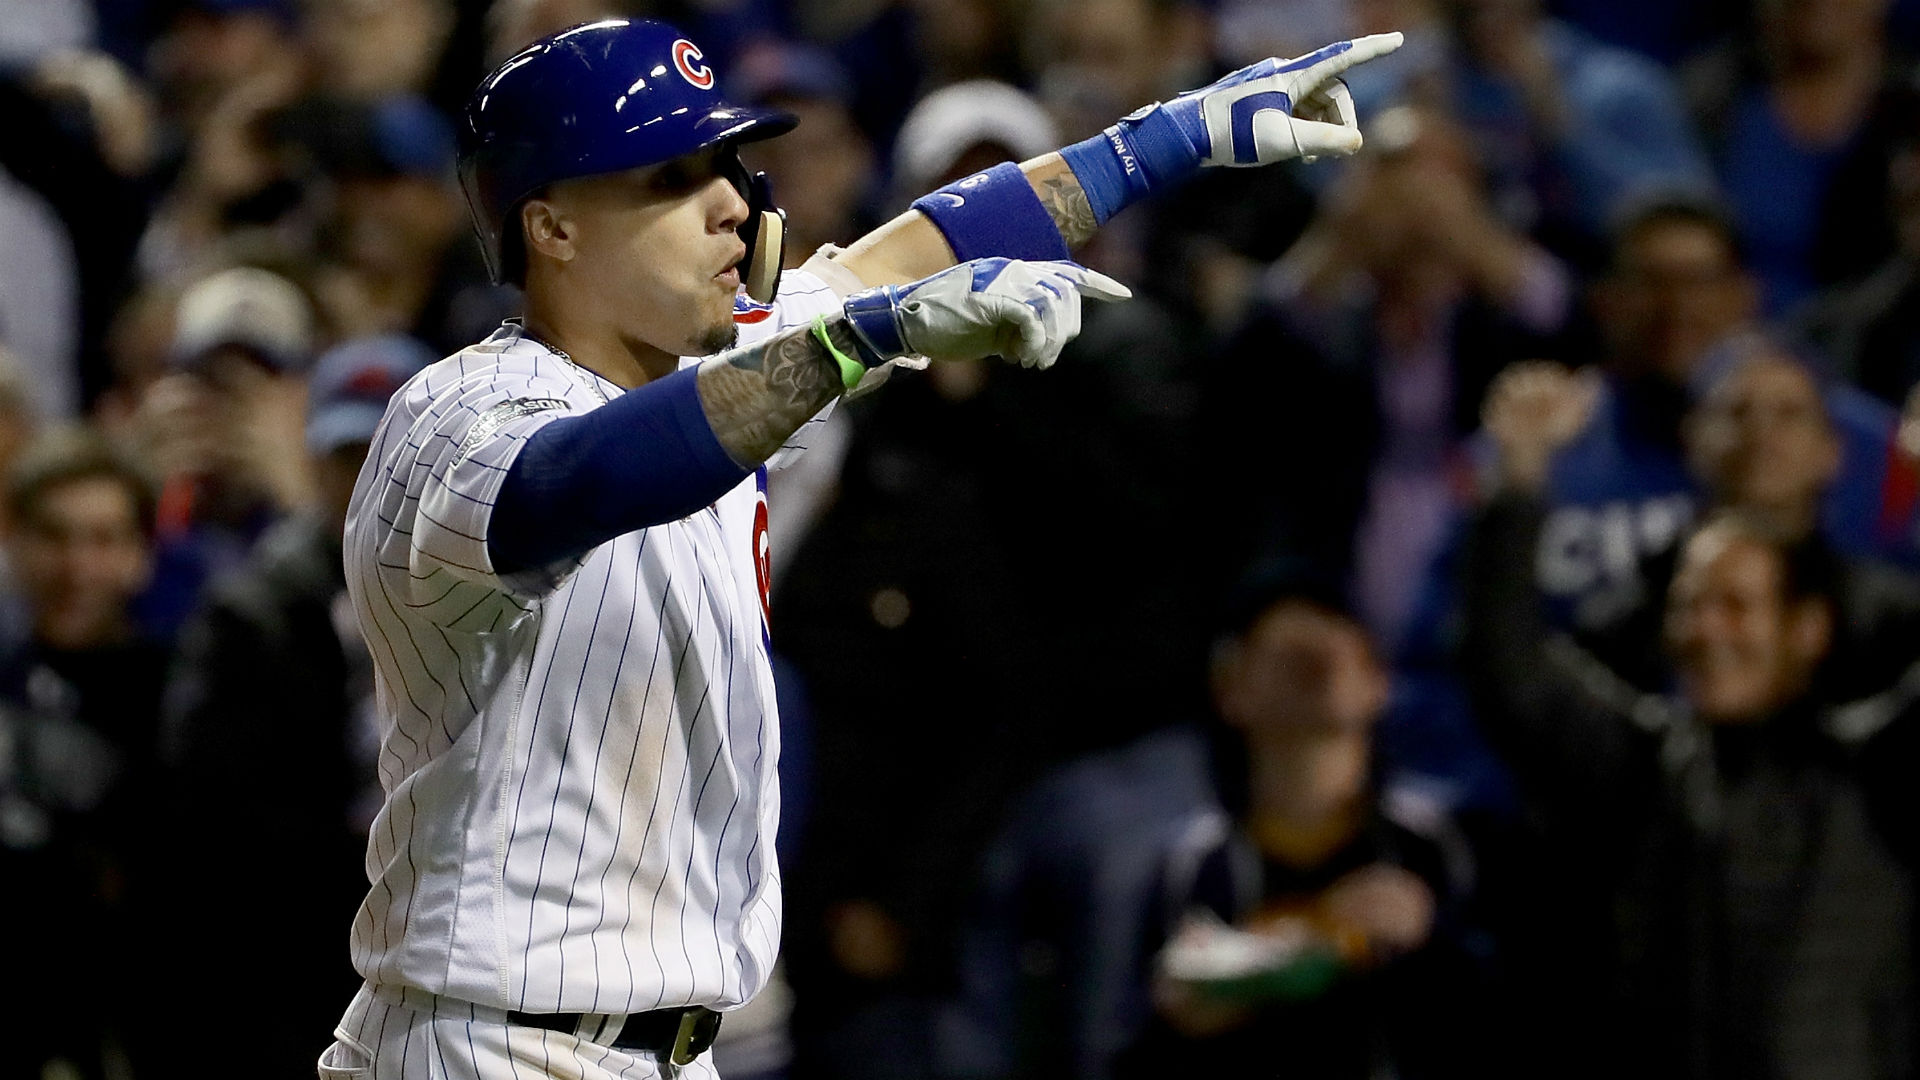 MLB wrap: Javier Baez's bunting skills send Cubs past Nationals